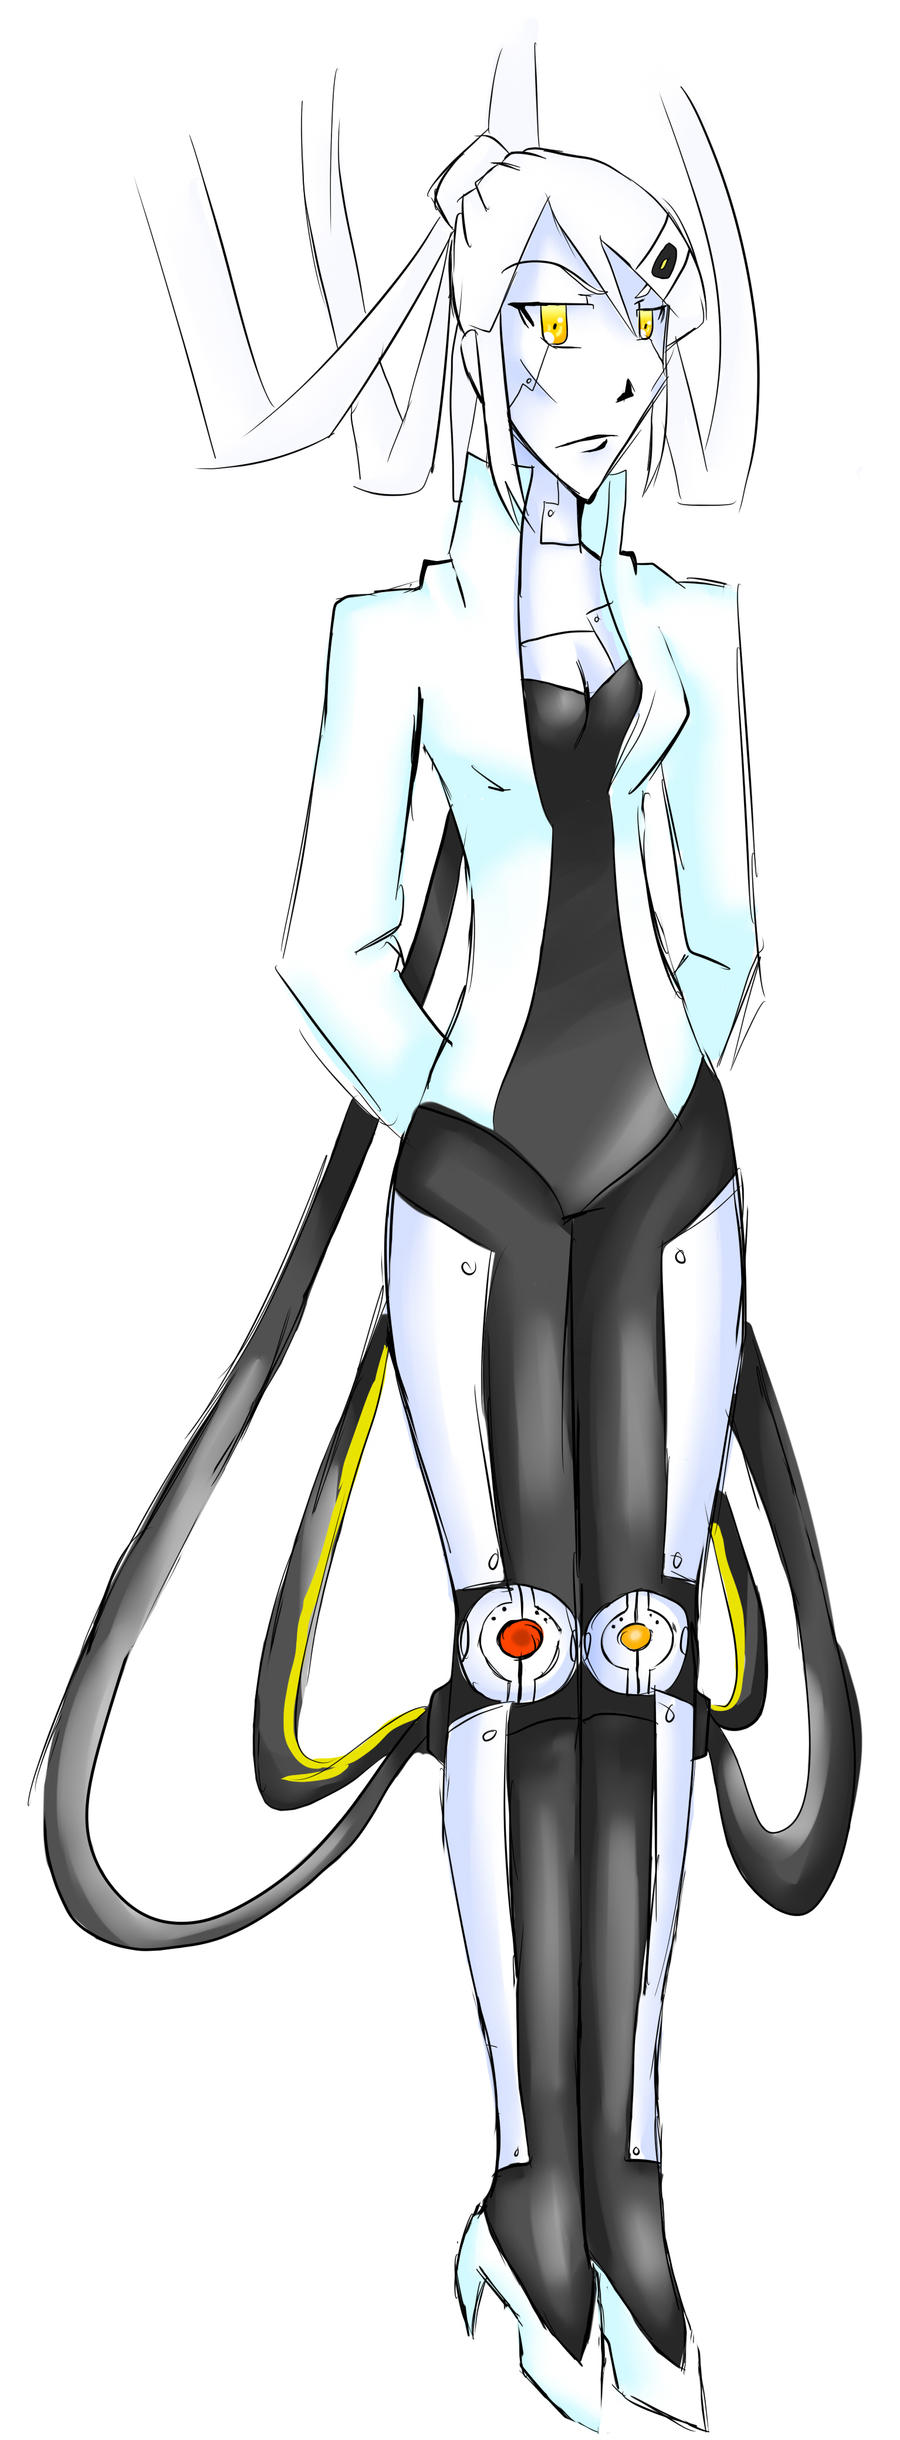 Human GLaDOS by wasserplane